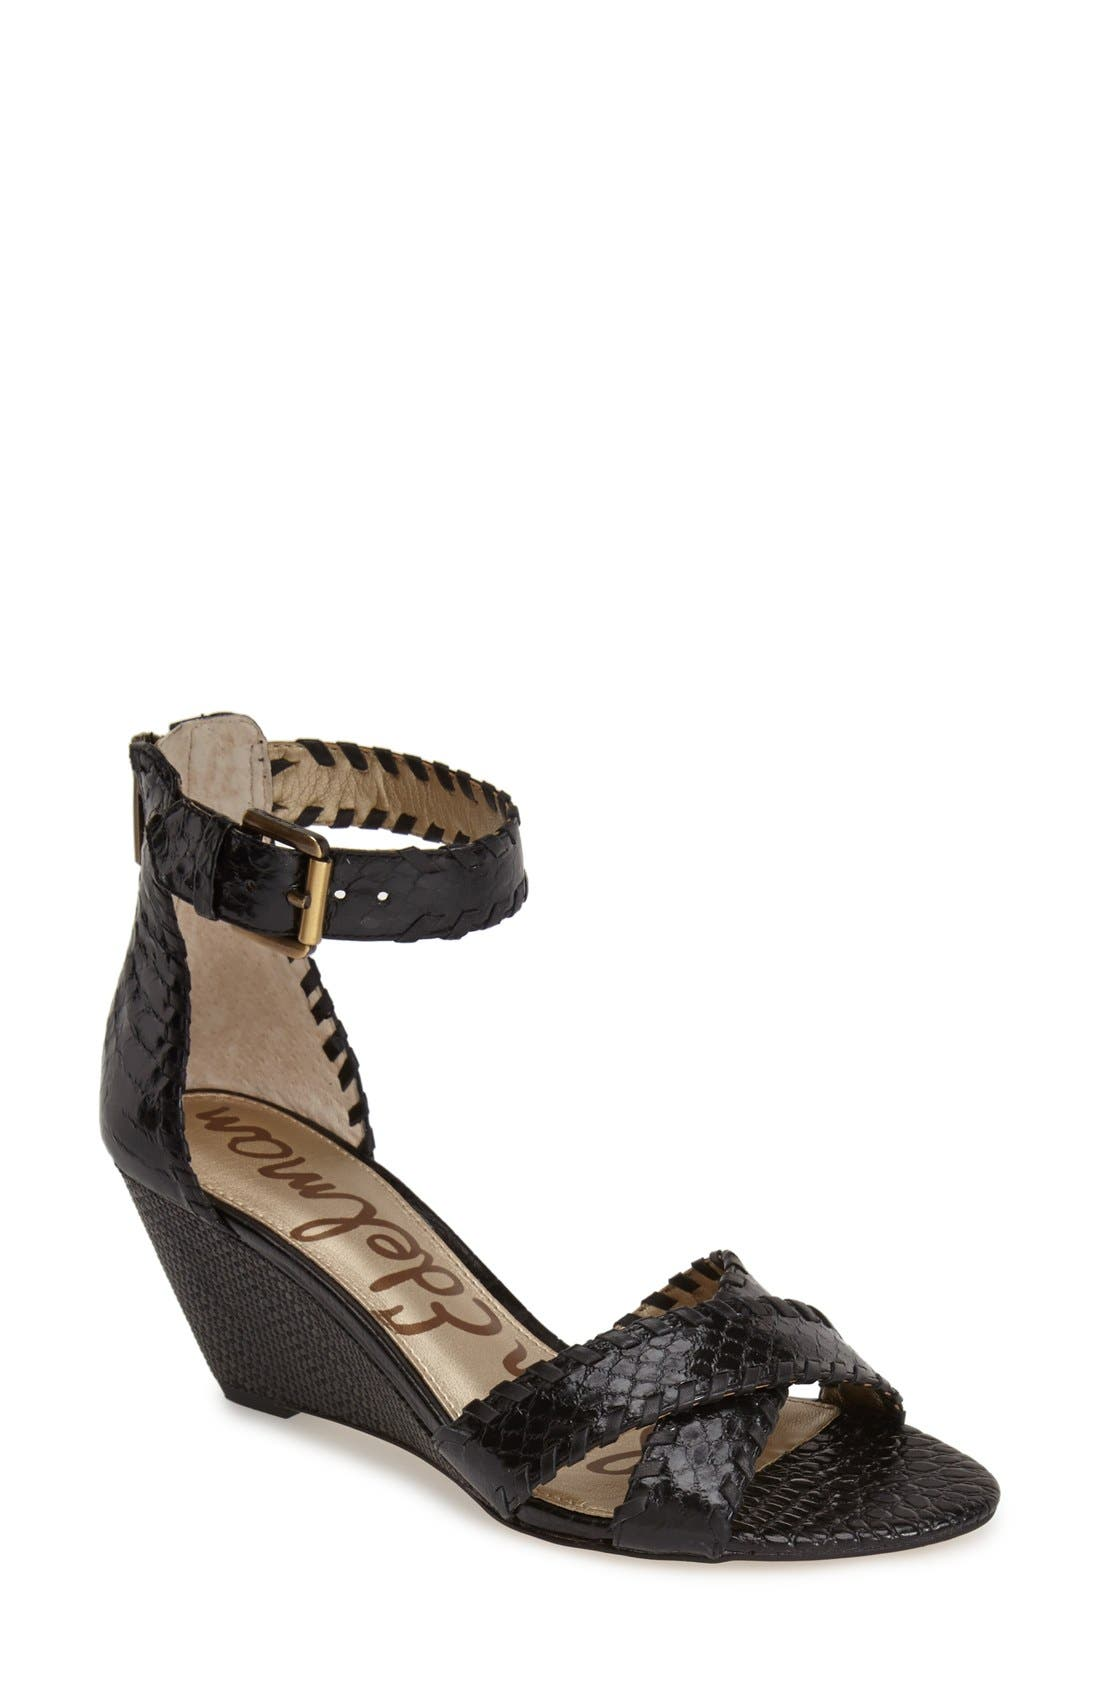 Main Image - Sam Edelman 'Silvia' Ankle Strap Wedge Sandal (Women)